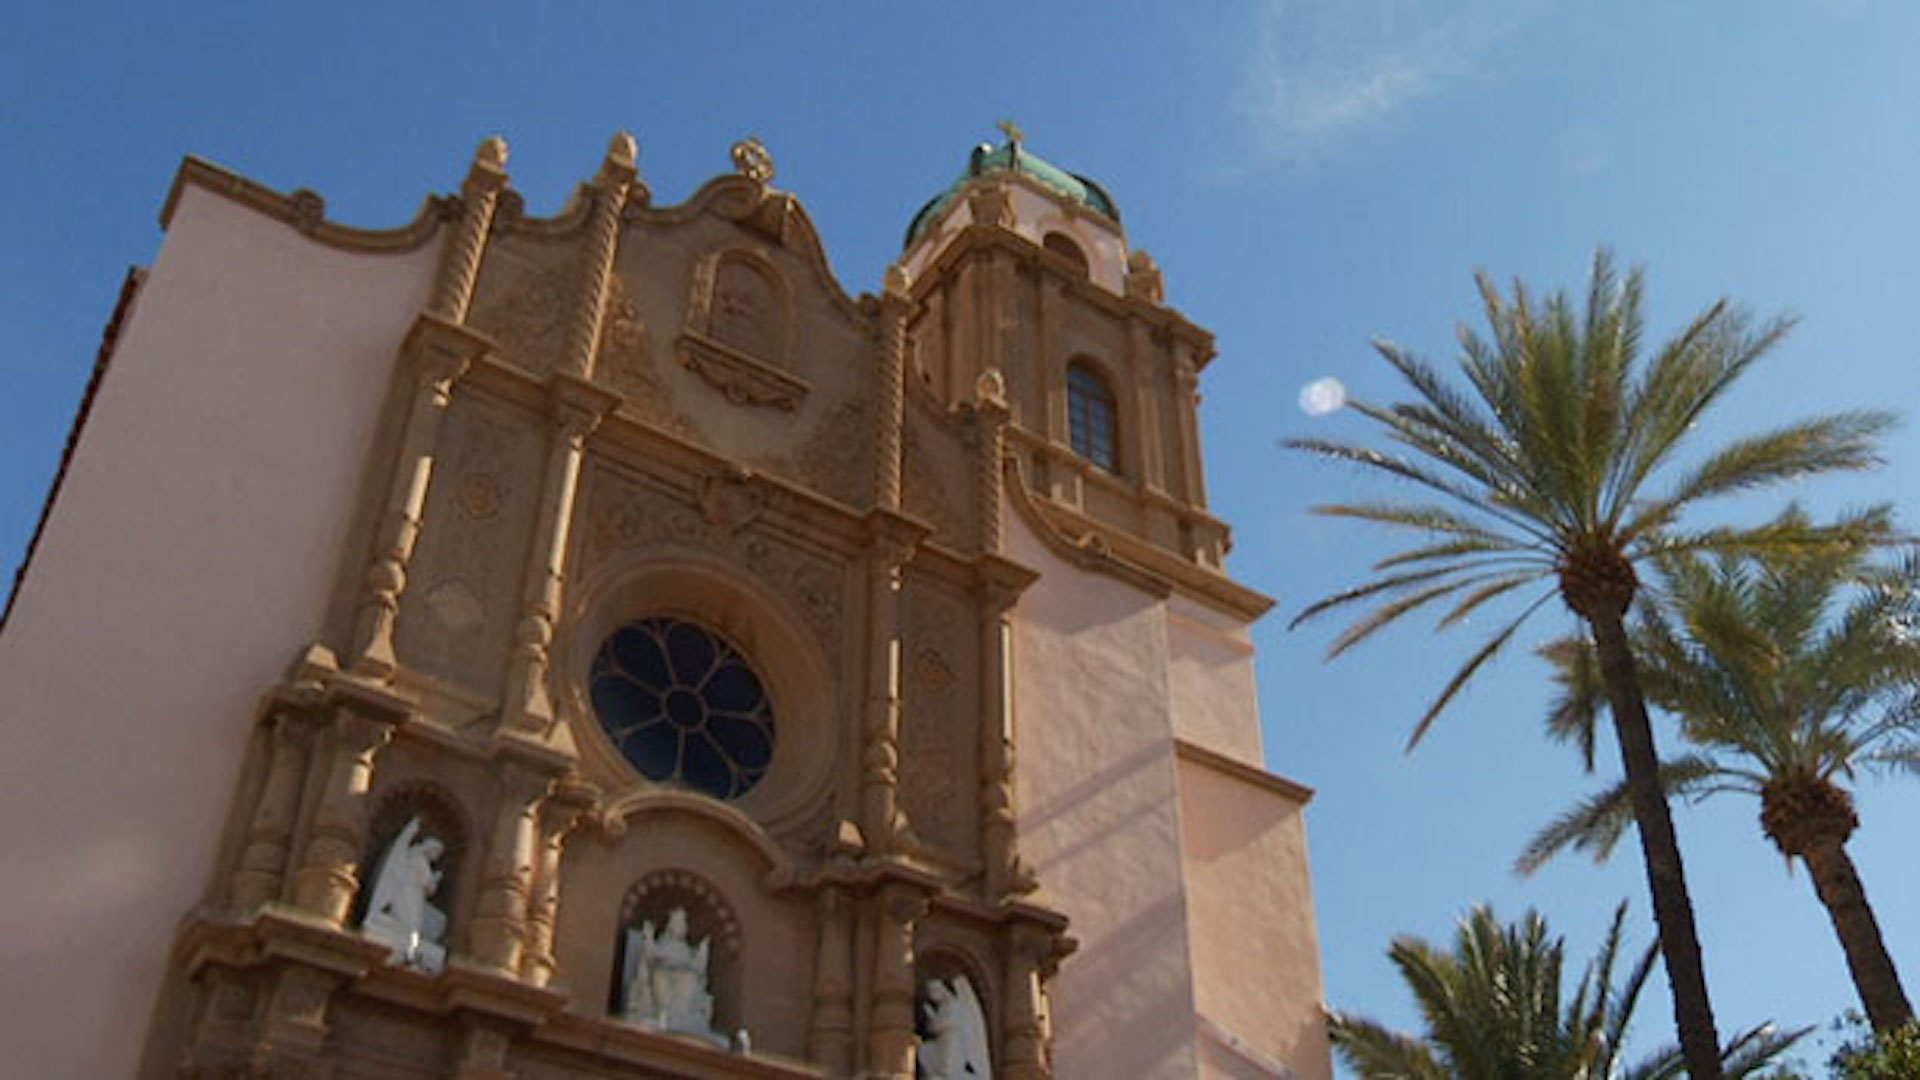 Tucson's Benedictine Monastery, unoccupied since 2016, is an East side landmark.